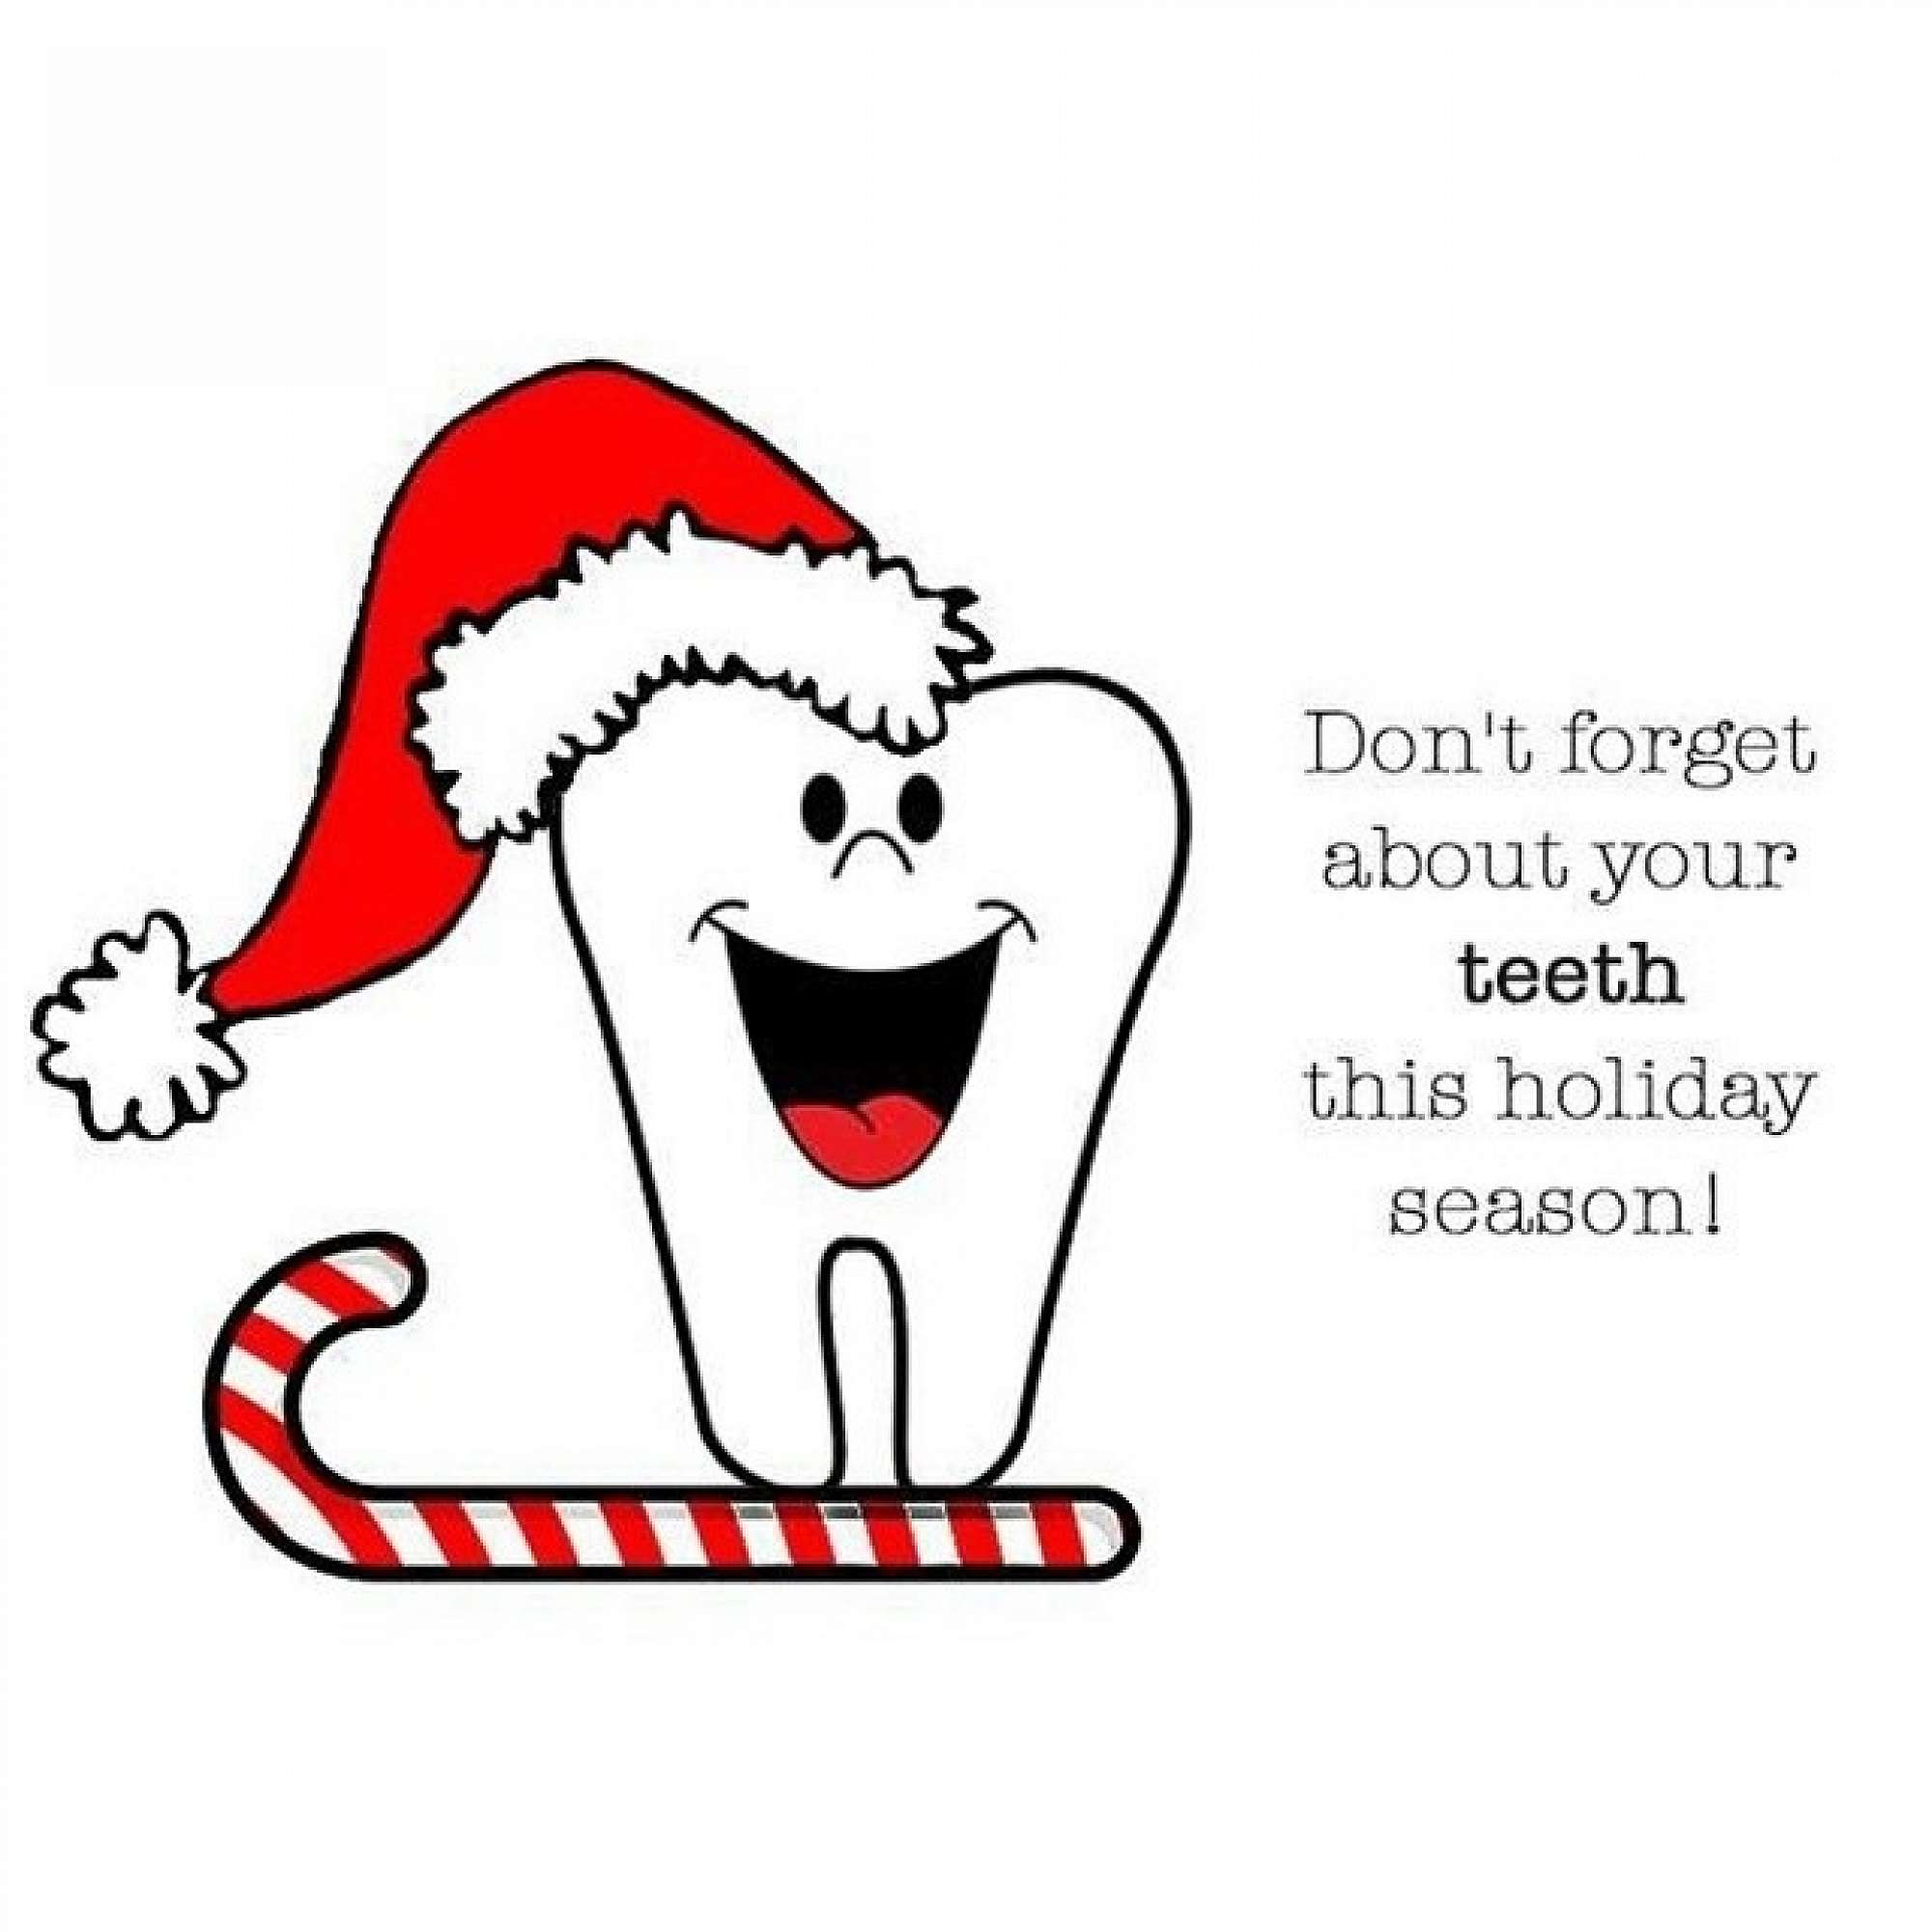 Dental Care over the School Holidays